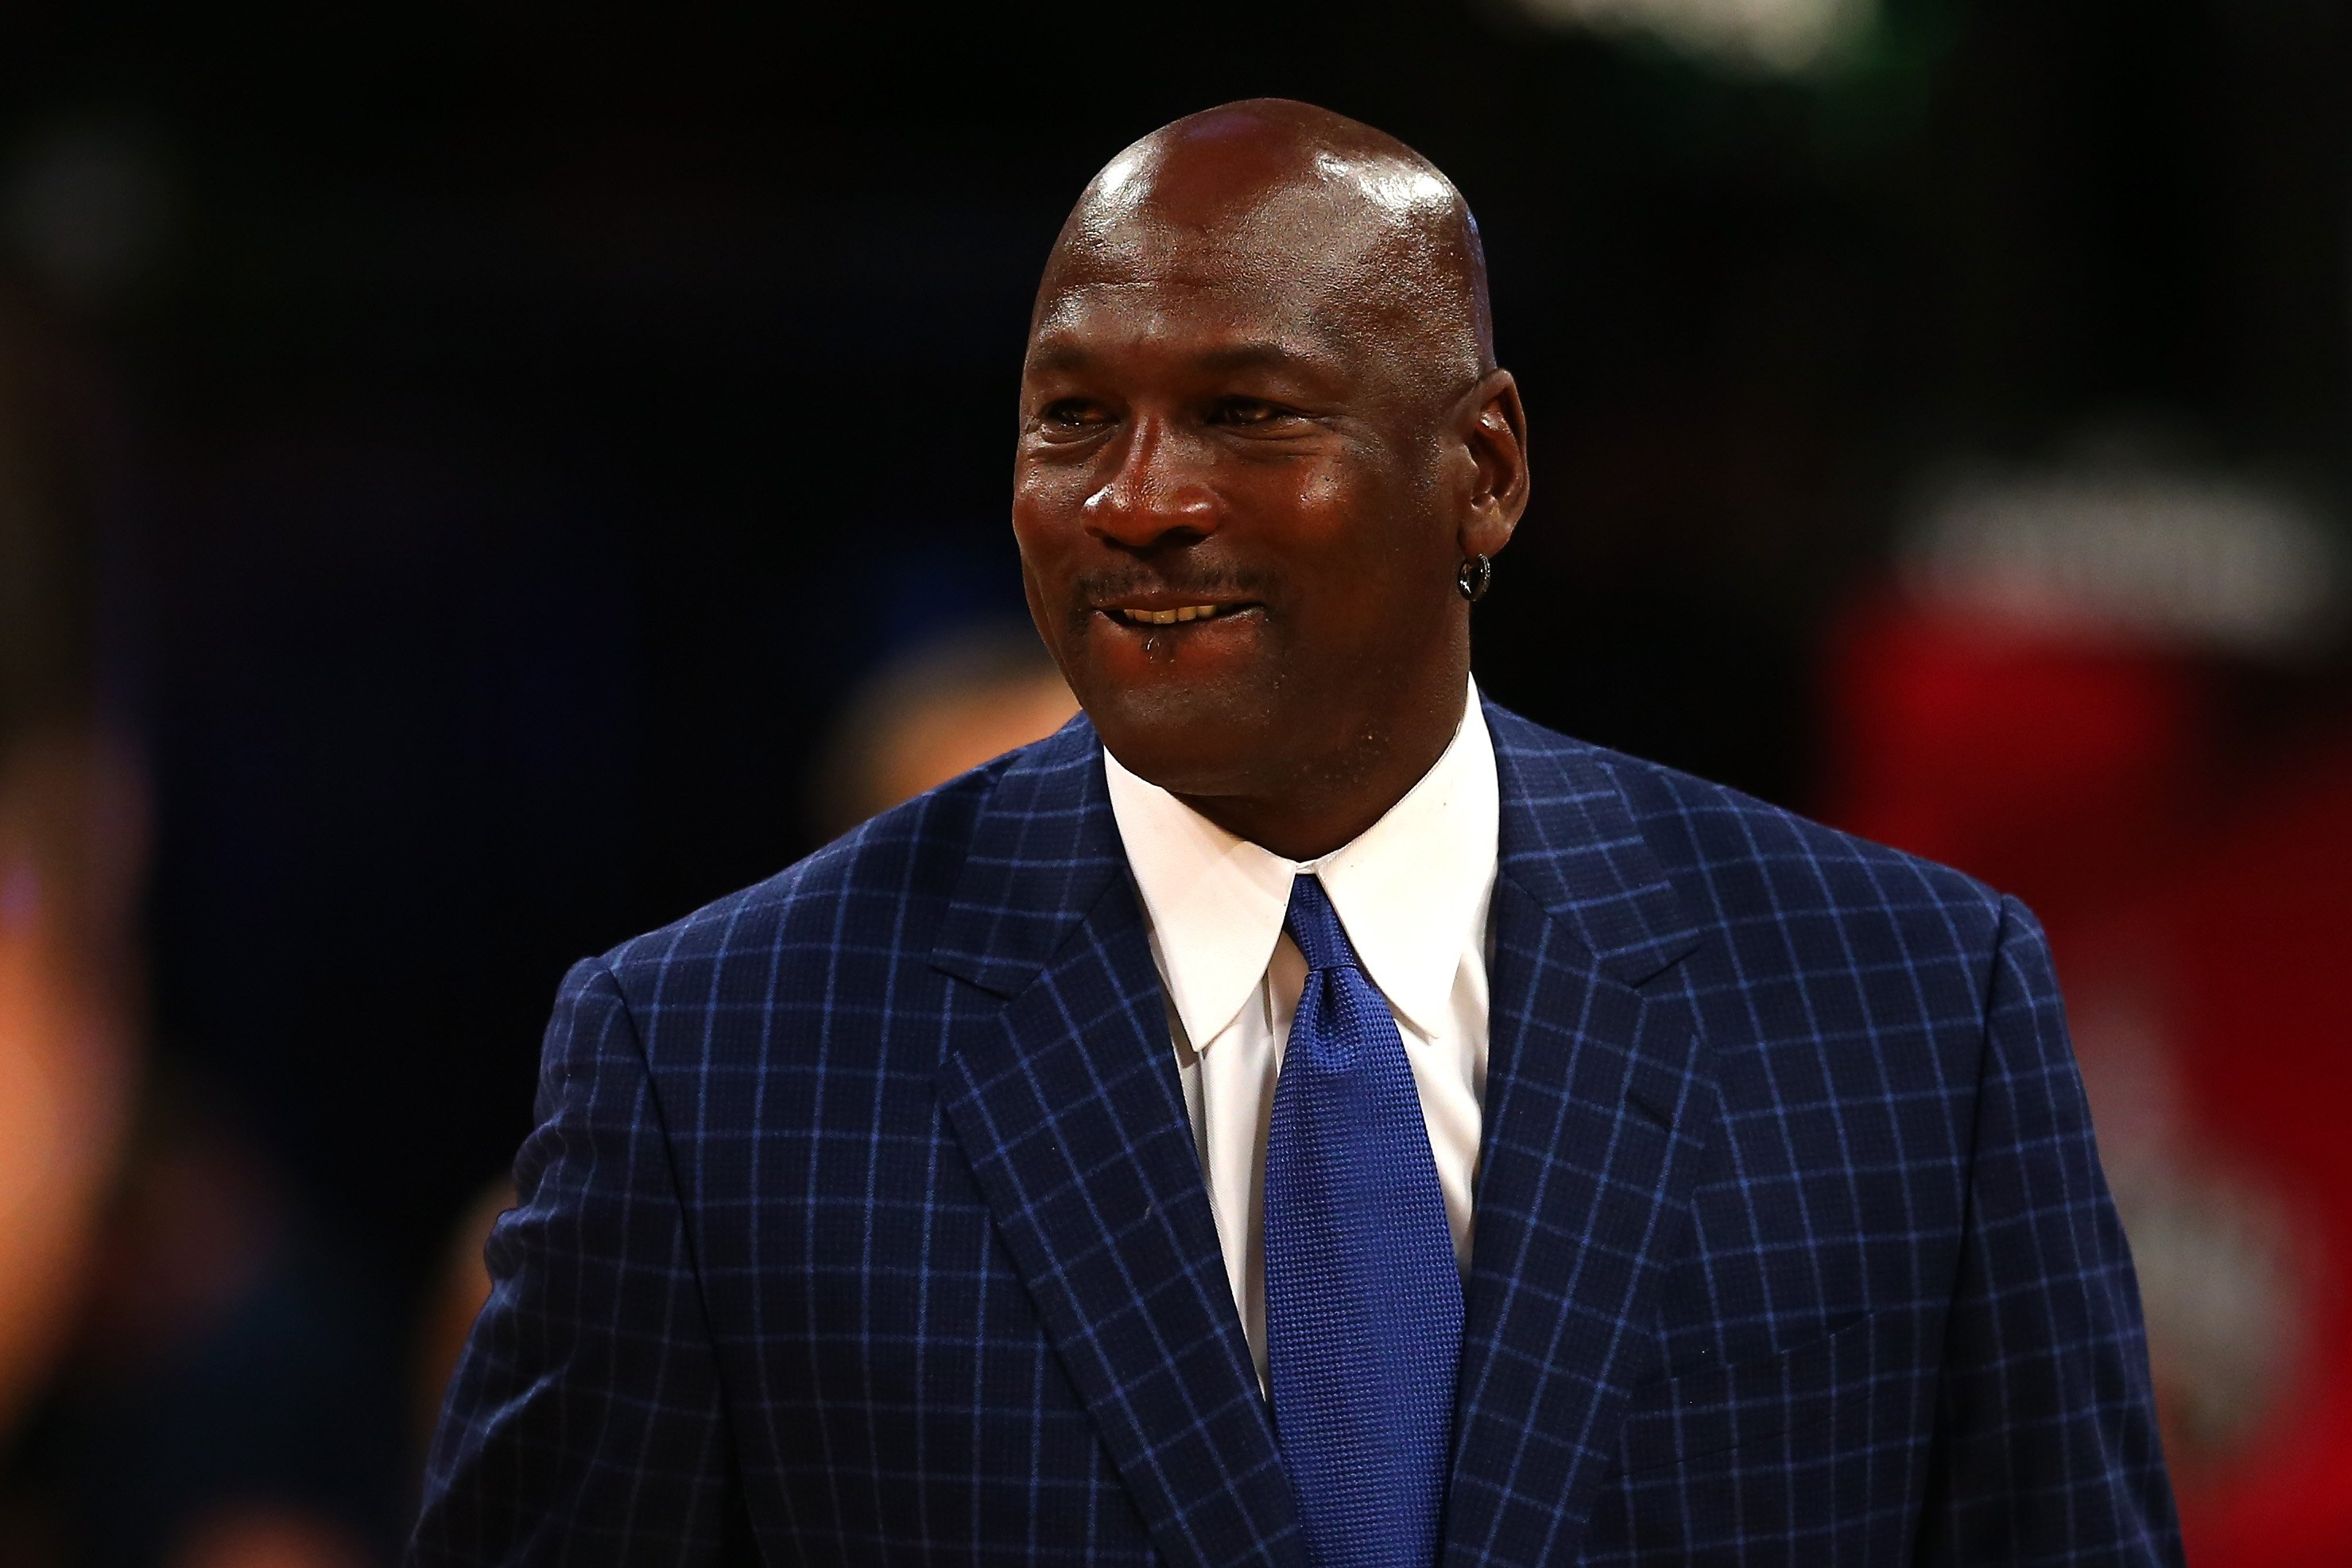 Michael Jordan walks off the court during the NBA All-Star Game 2016 at the Air Canada Centre on February 14, 2016 | Photo: GettyImages